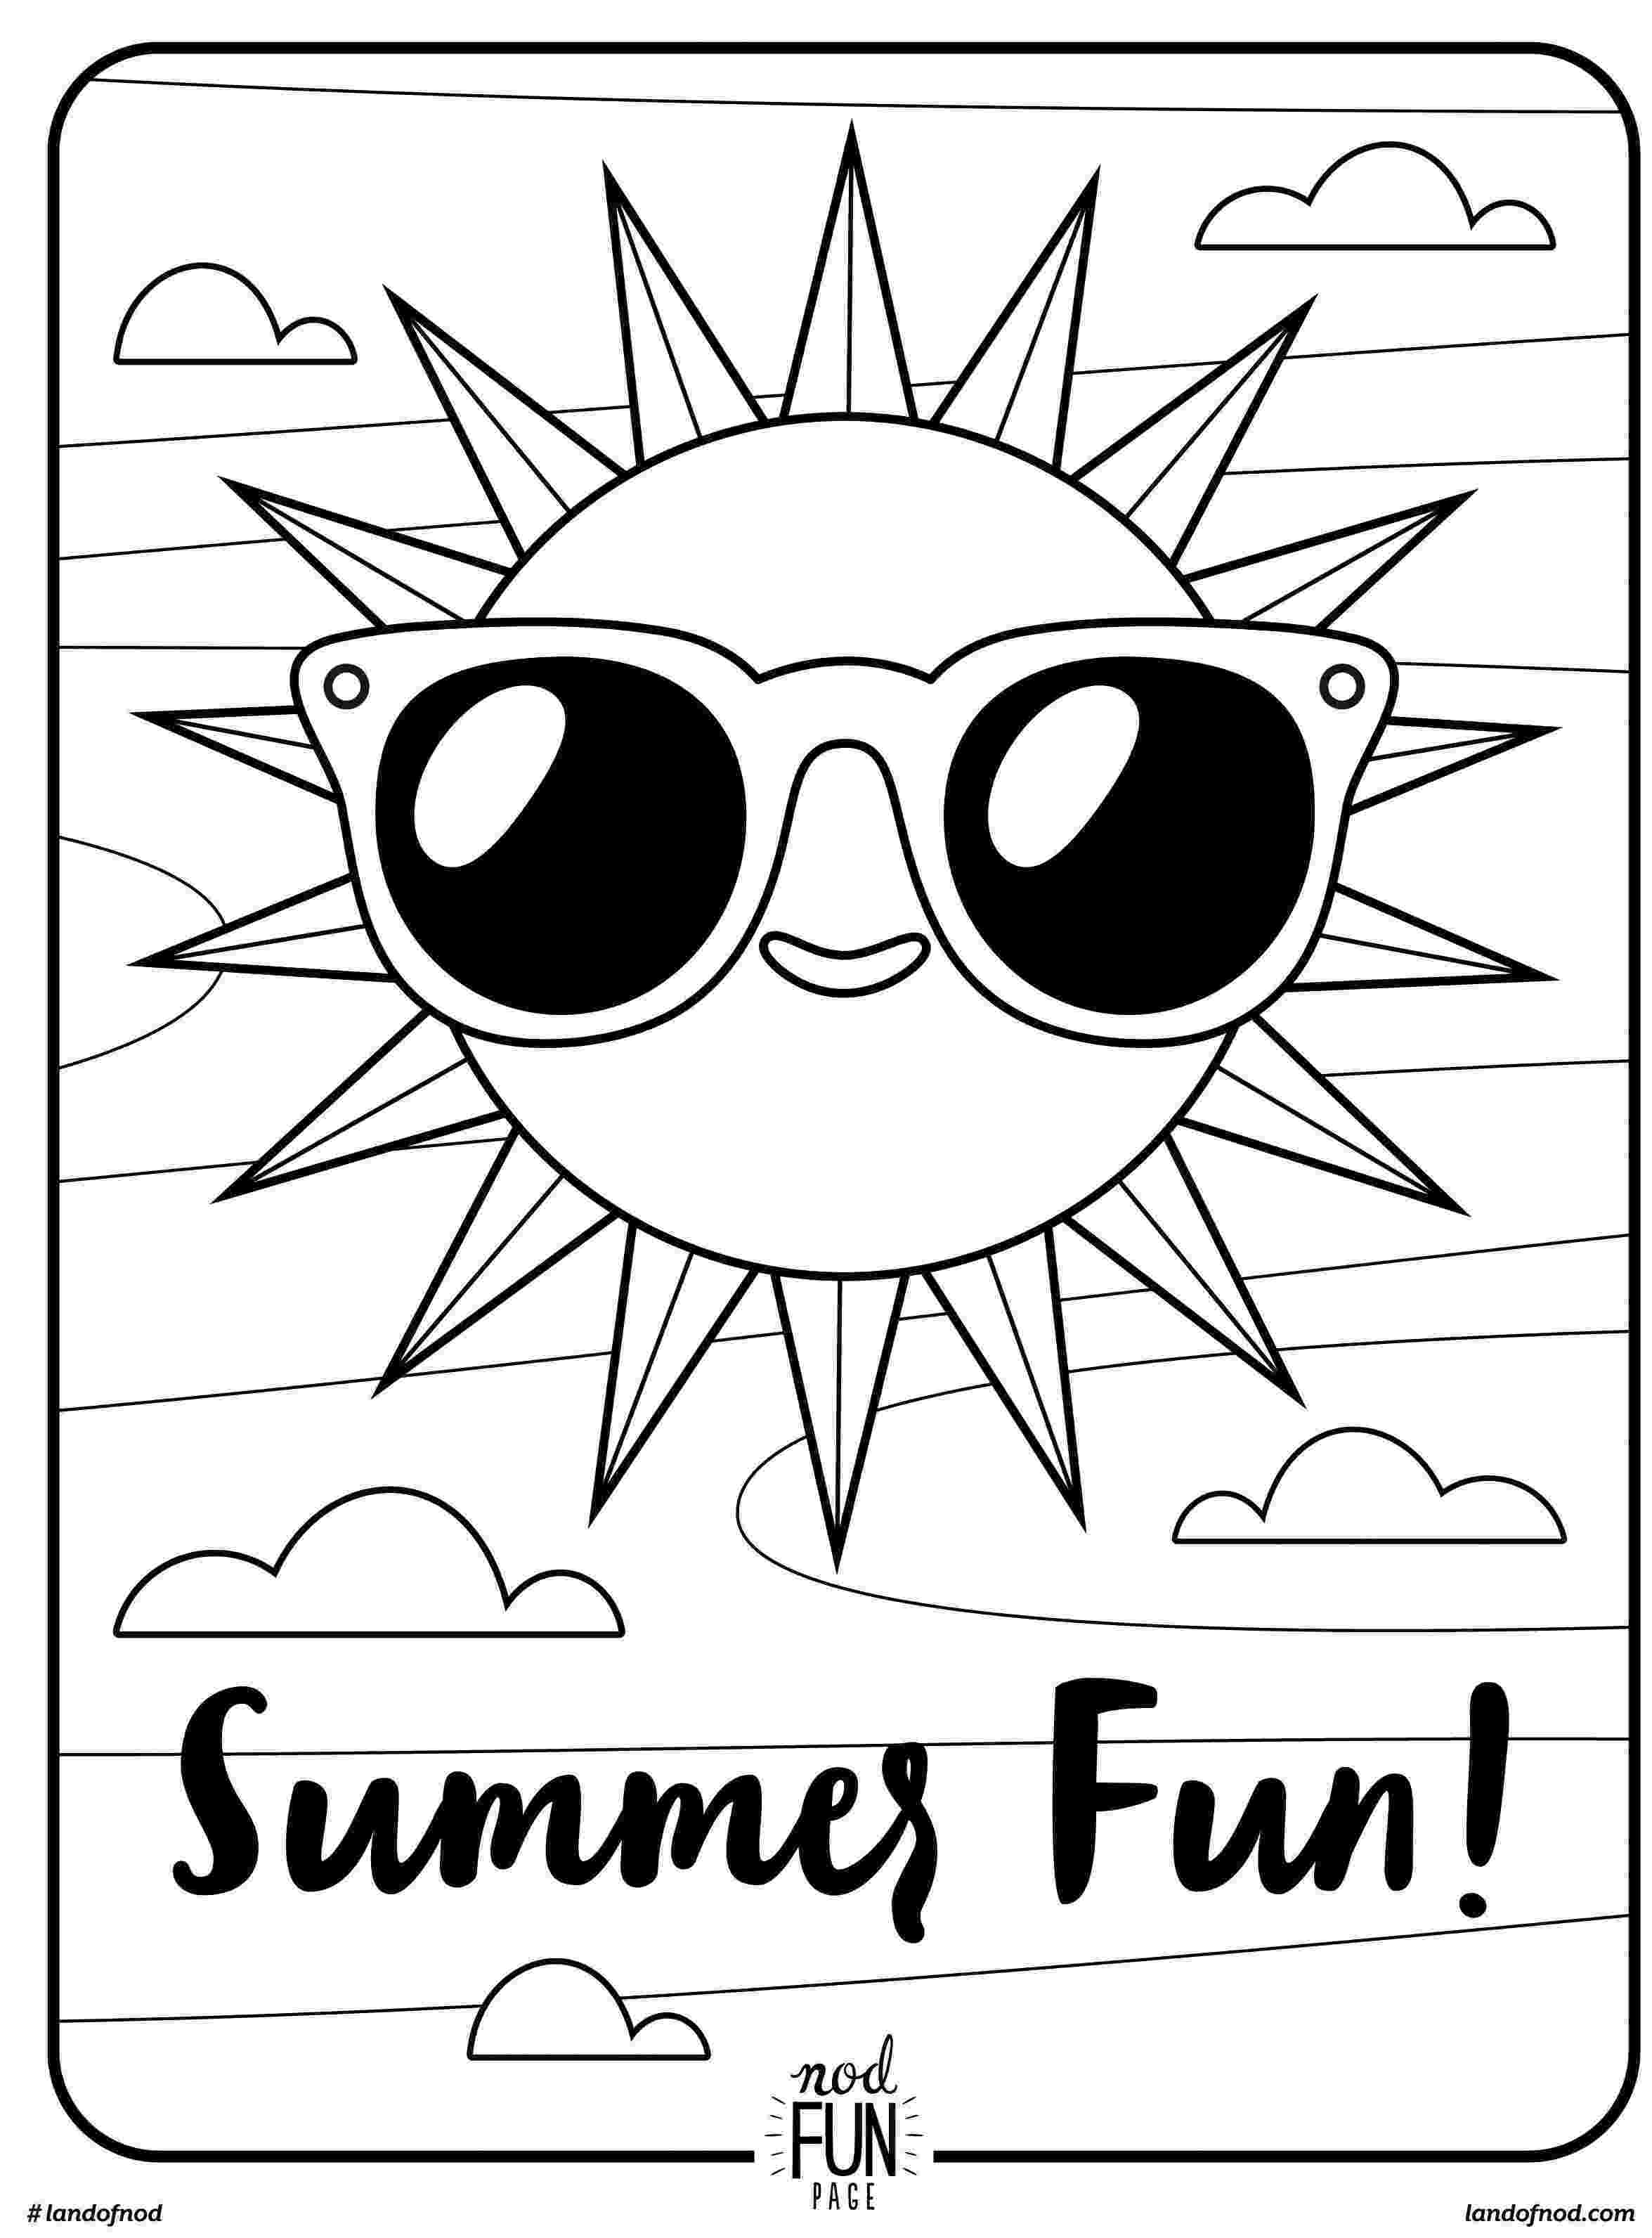 fun colouring pages for kids funny coloring pages for kids coloring home colouring pages for kids fun